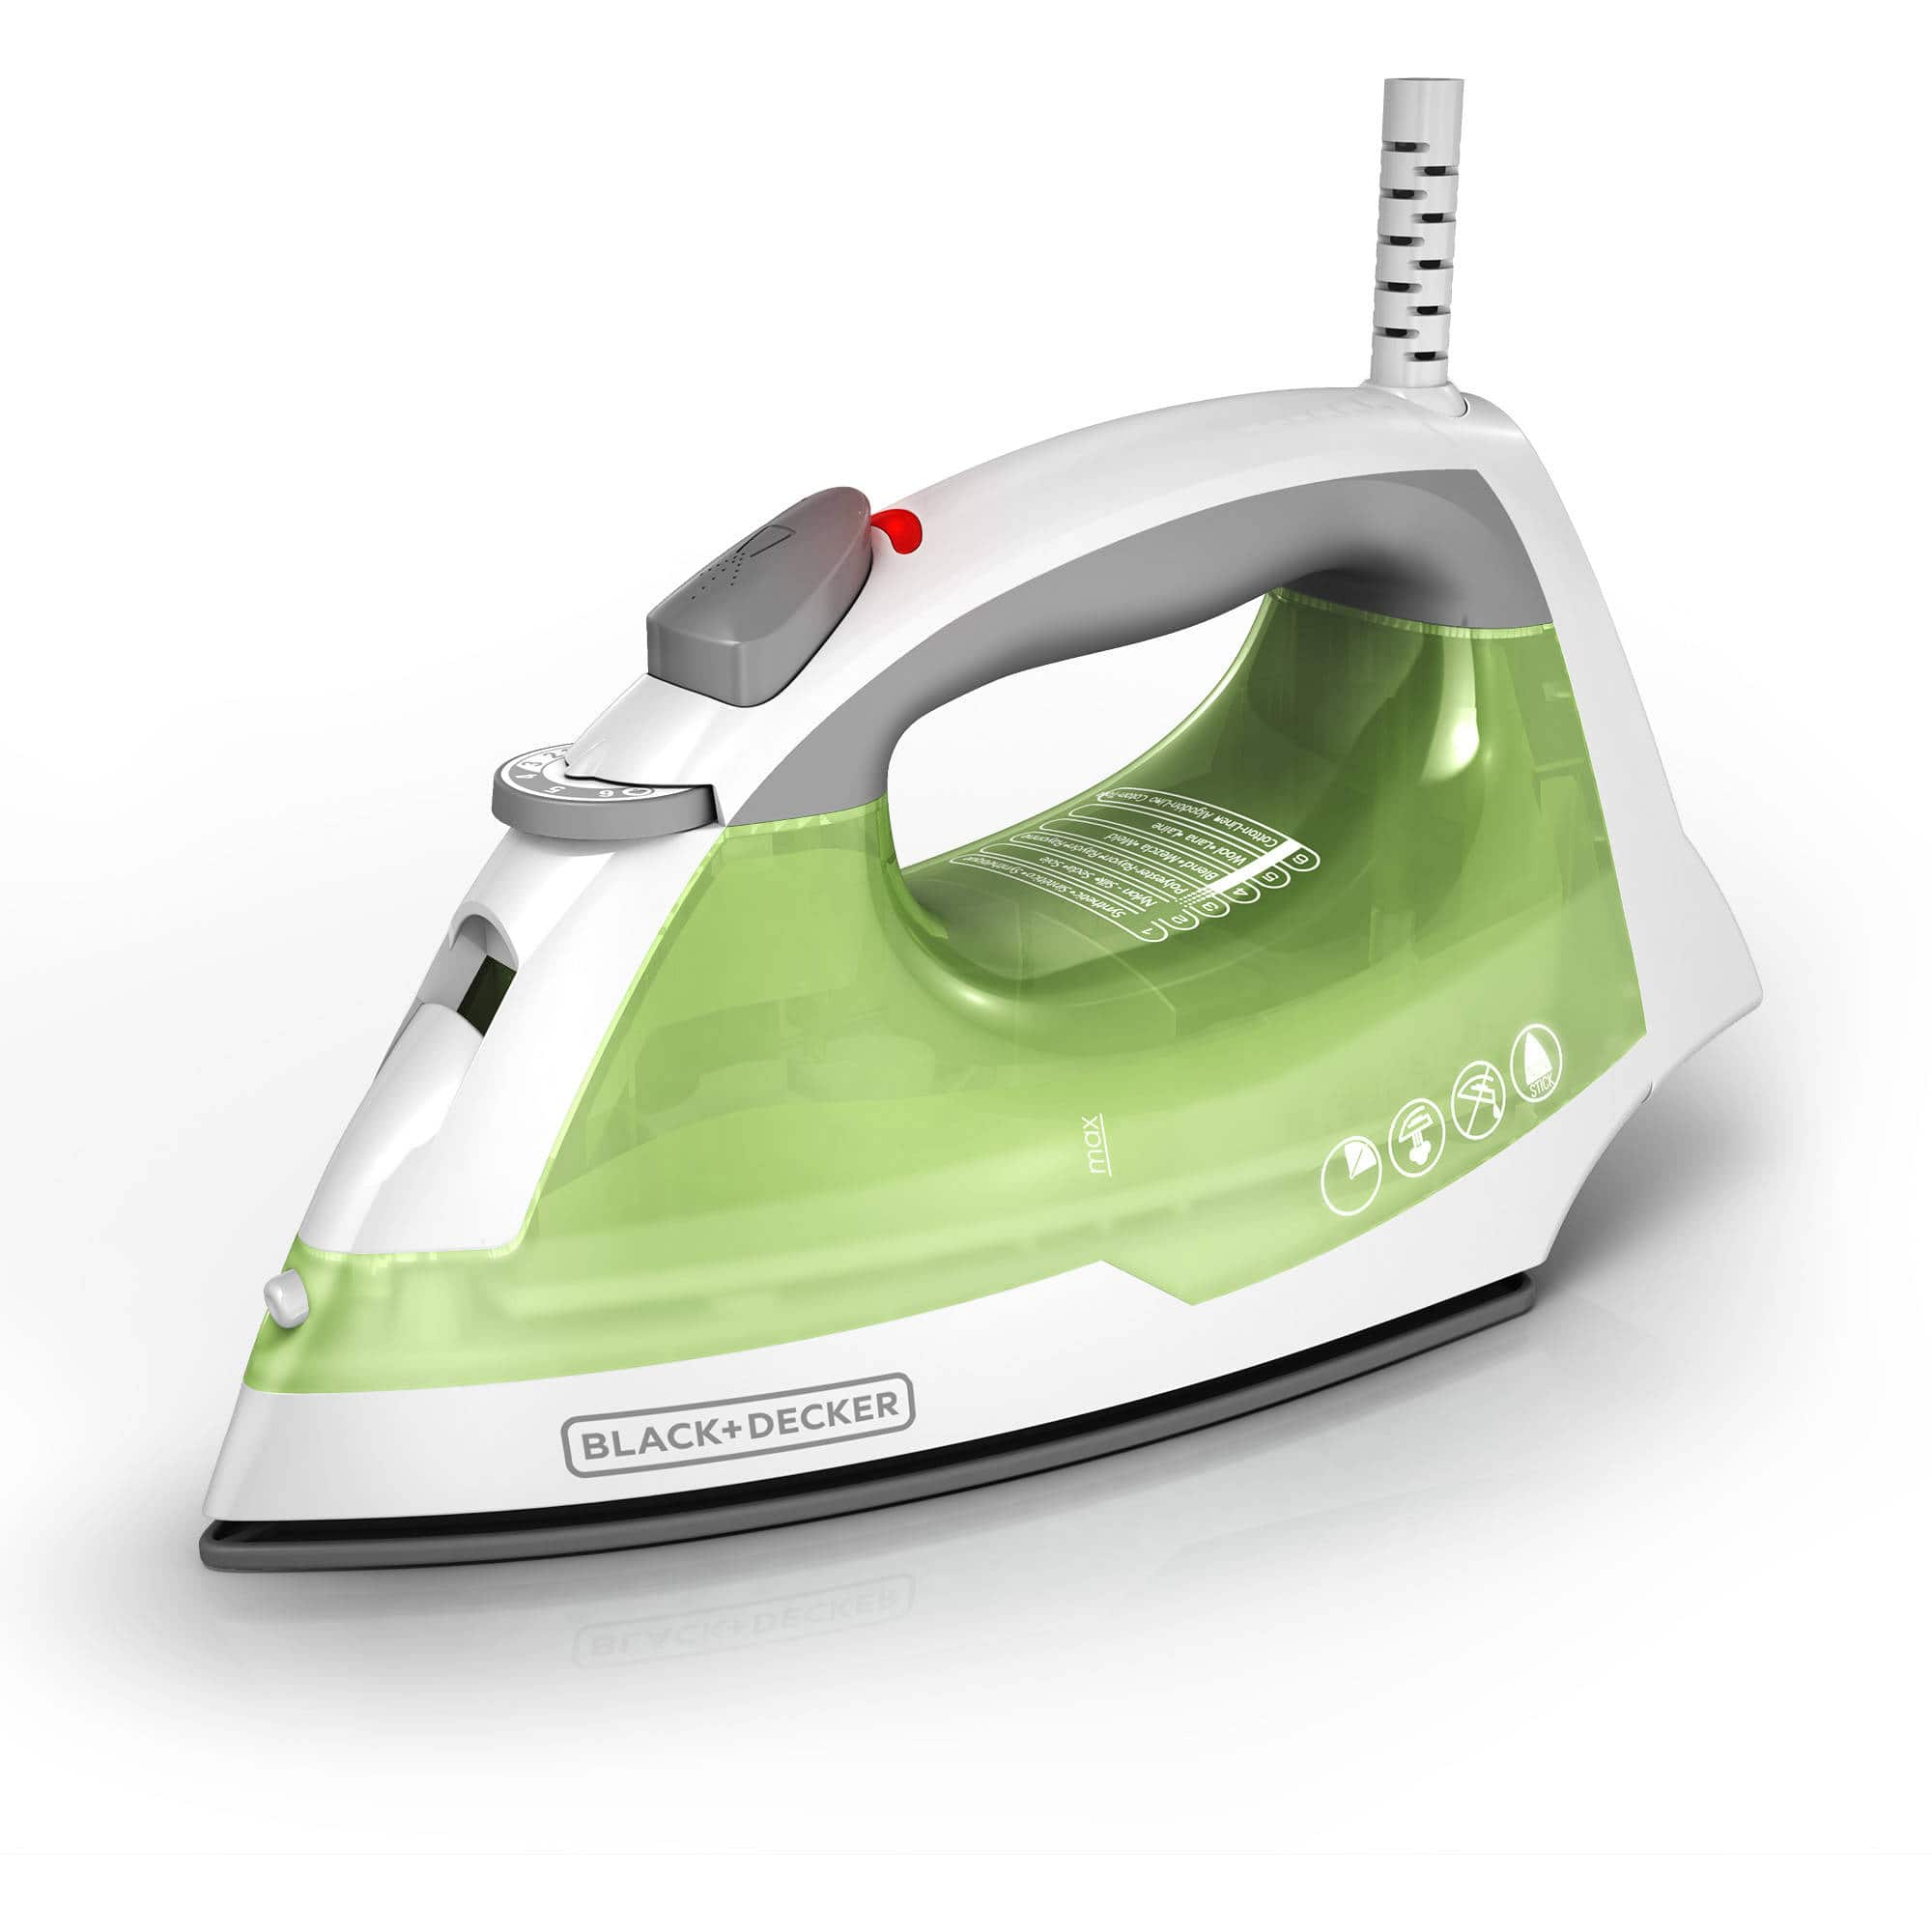 BLACK+DECKER Easy Steam Compact Clothing Iron, Green Steam Iron IR02V for $5